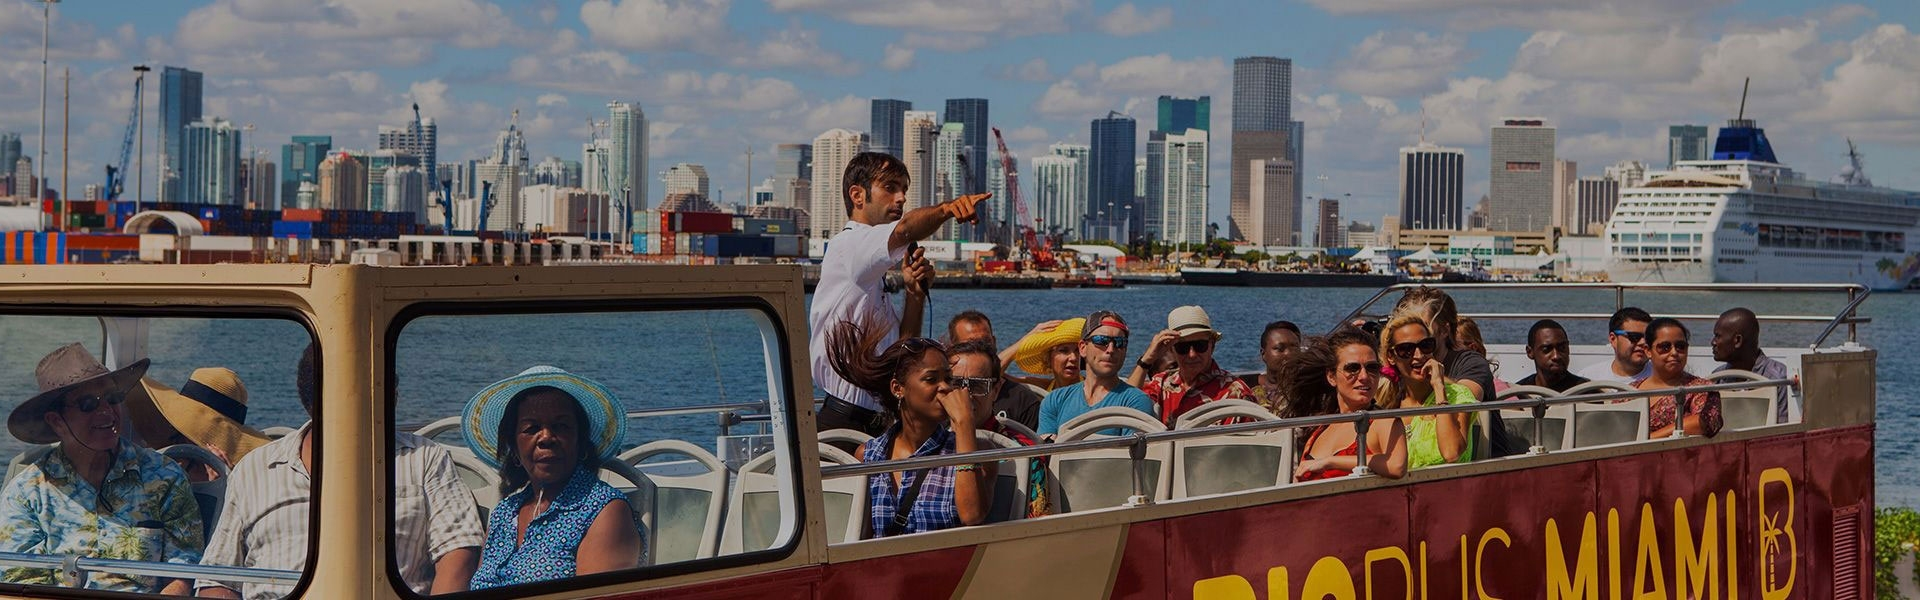 Miami Hop On, Hop Off Bus Routes Map | Big Bus Tours within Miami Beach Bus Routes Map